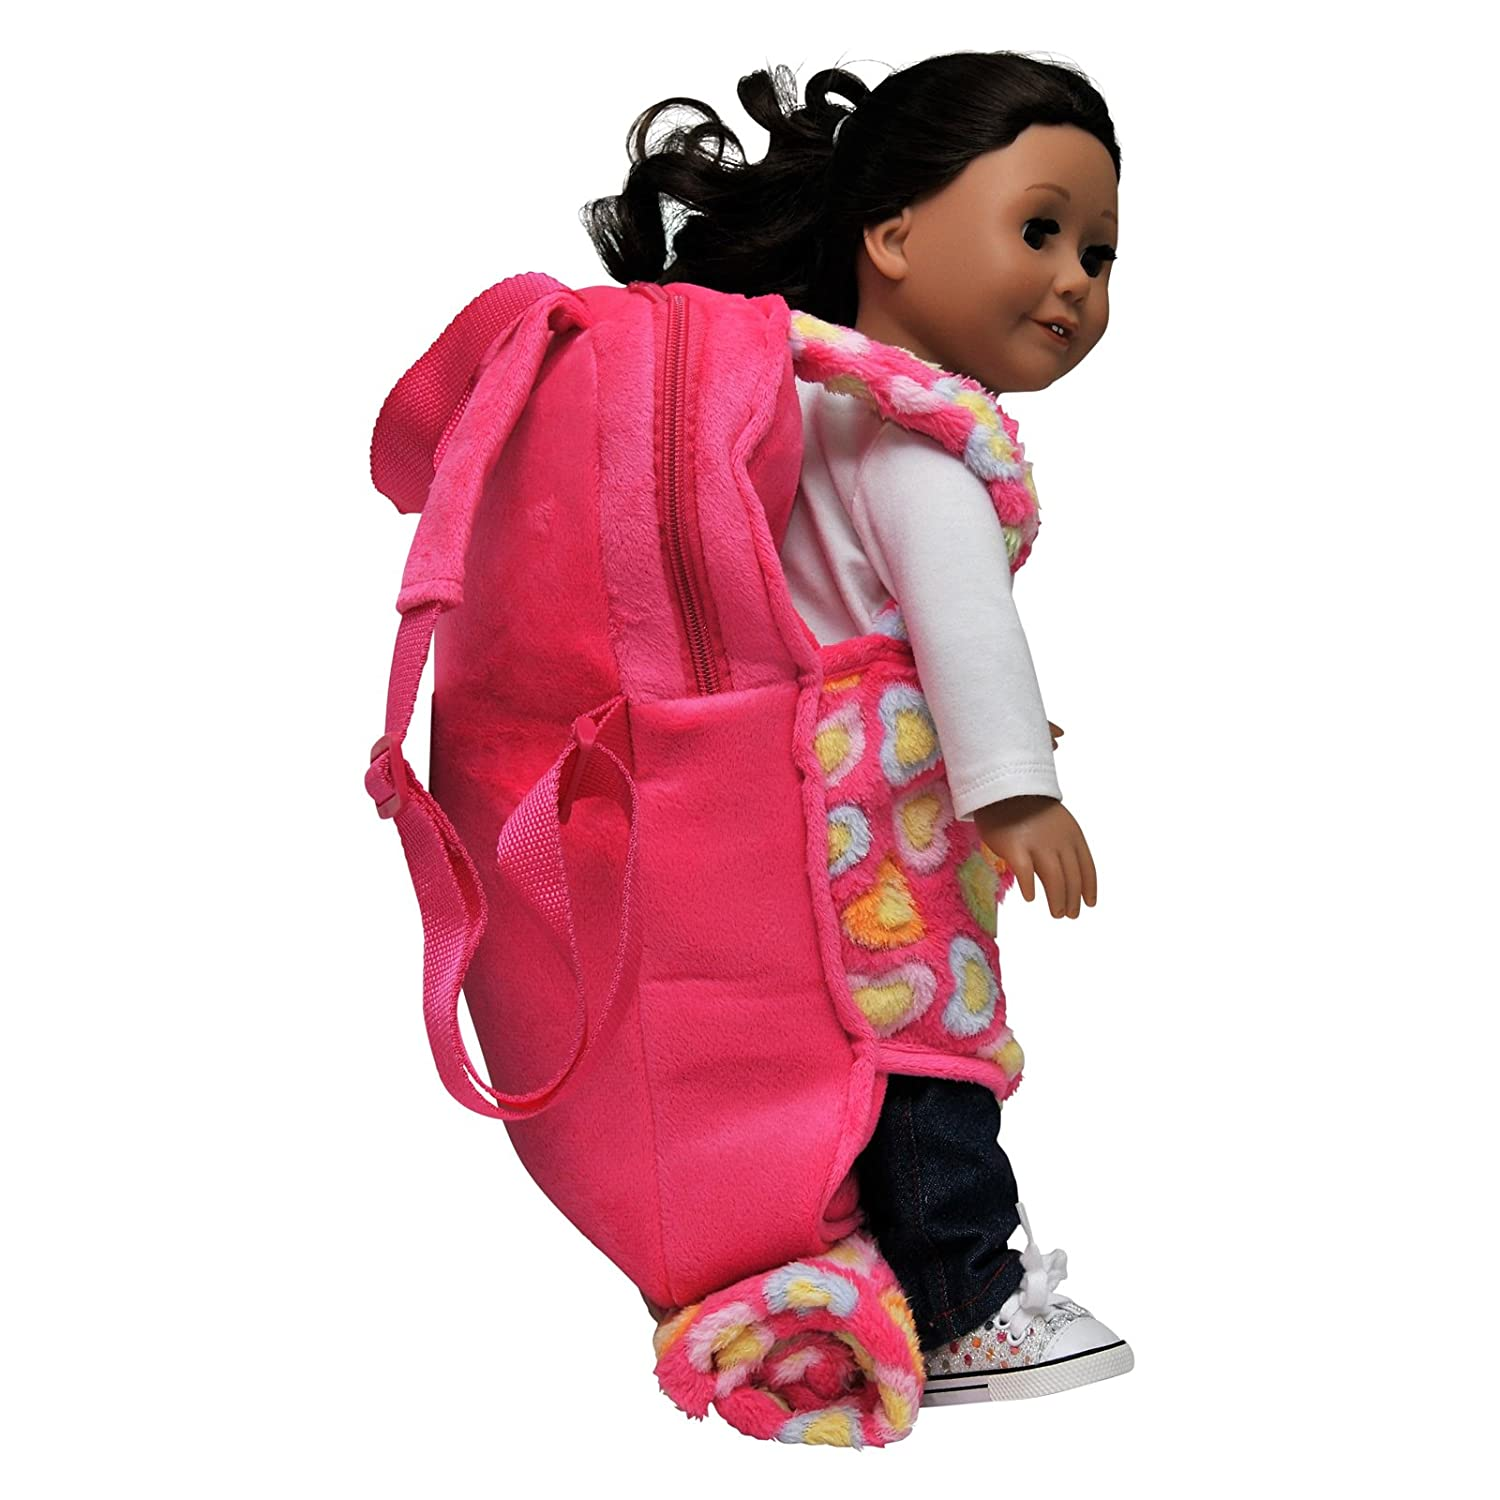 37cabd88c701 Amazon.com  The Queen s Treasures Pink aby Doll Backpack Carrier and Sleeping  Bag for 18 inch and 15 inch Dolls. Fits American Girl Dolls   Bitty Baby ...